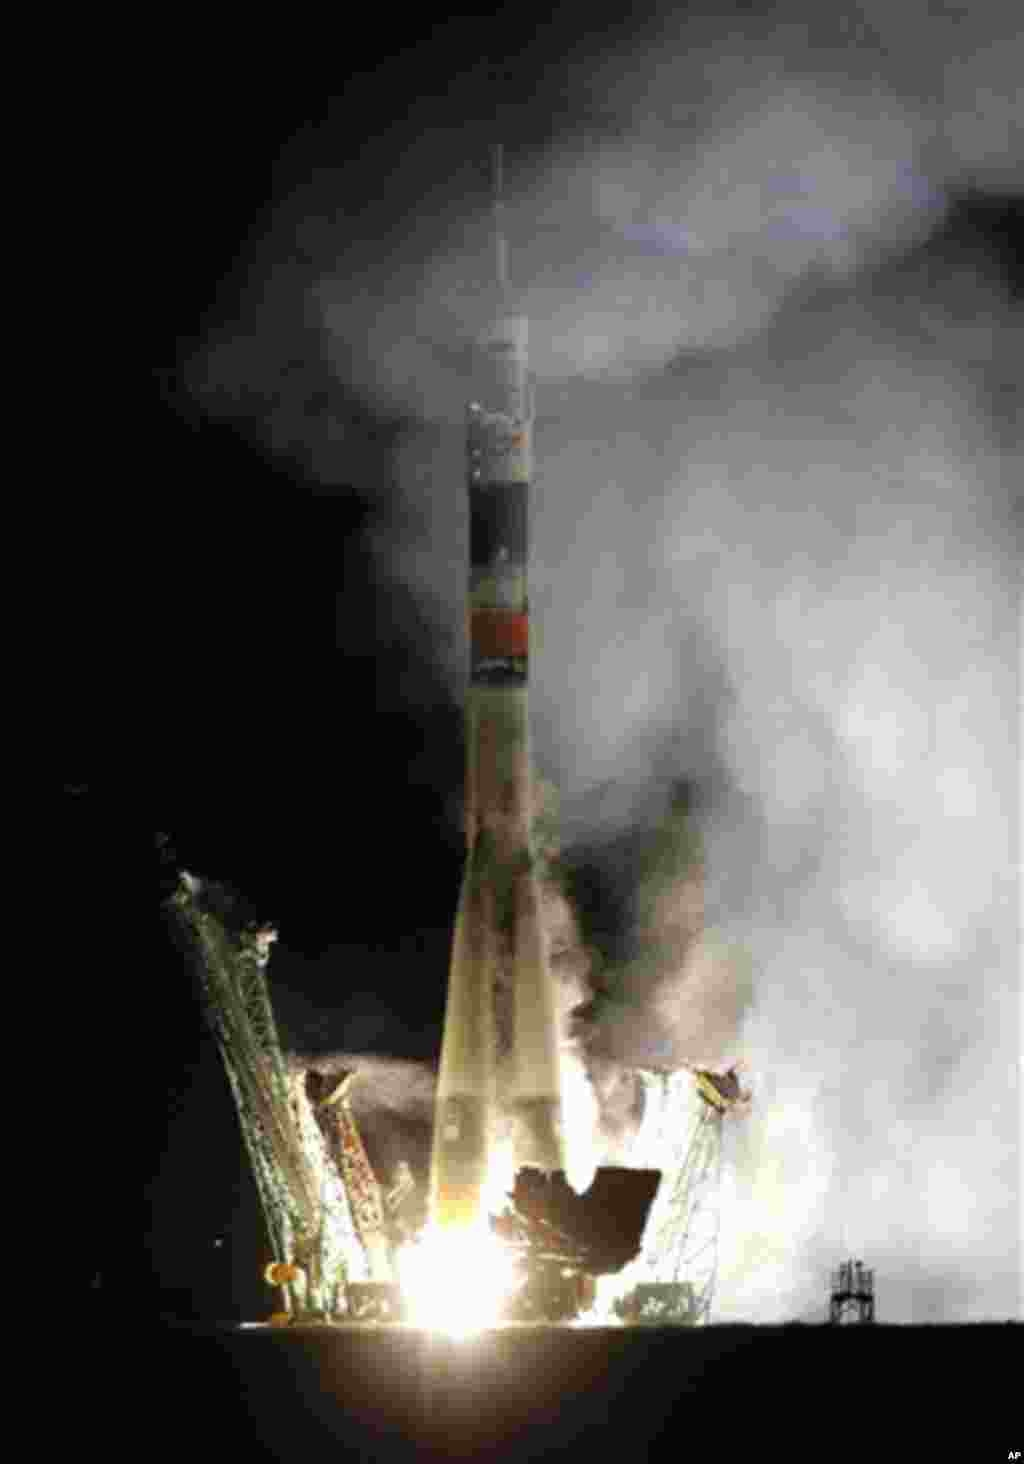 The Soyuz-FG rocket booster with Soyuz TMA-01M space ship carrying a new crew to the International Space Station, ISS, blasts off from the Russian leased Baikonur cosmodrome, Kazakhstan, early Friday, Oct. 8, 2010. The Russian rocket carries US astronaut